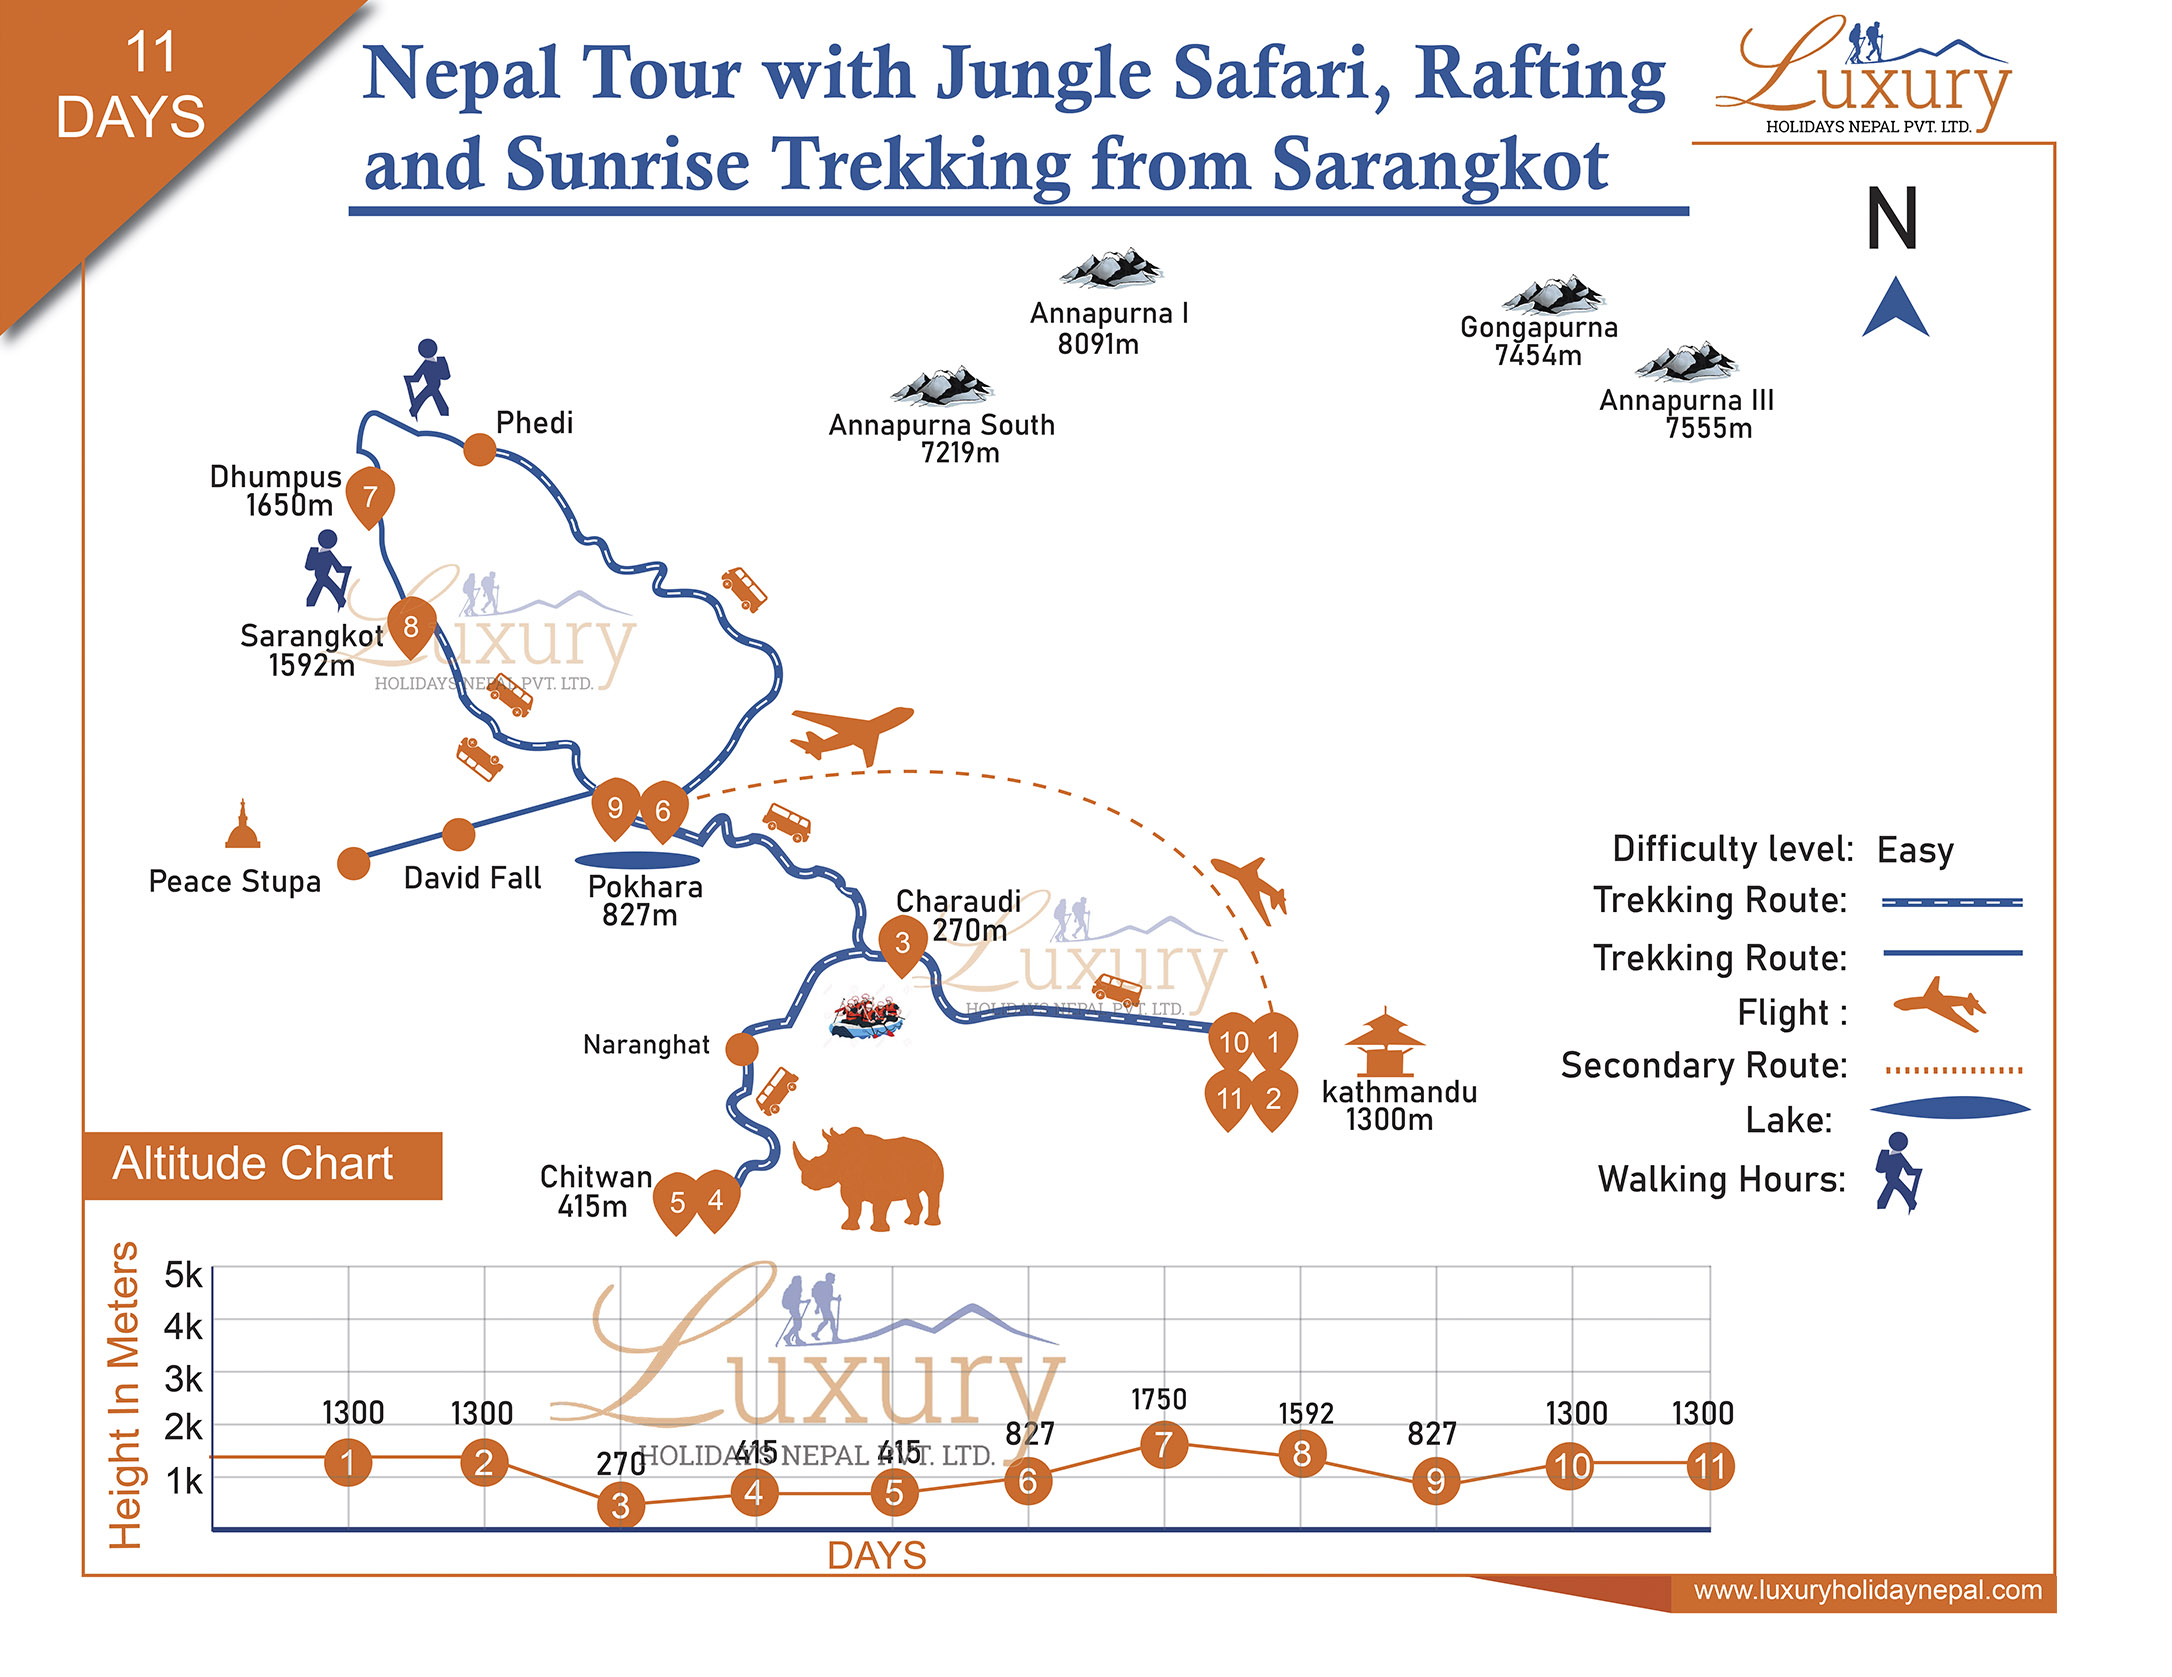 Nepal Tour with Jungle Safari, rafting and sunrise trekking from Sarangkot Trip Map